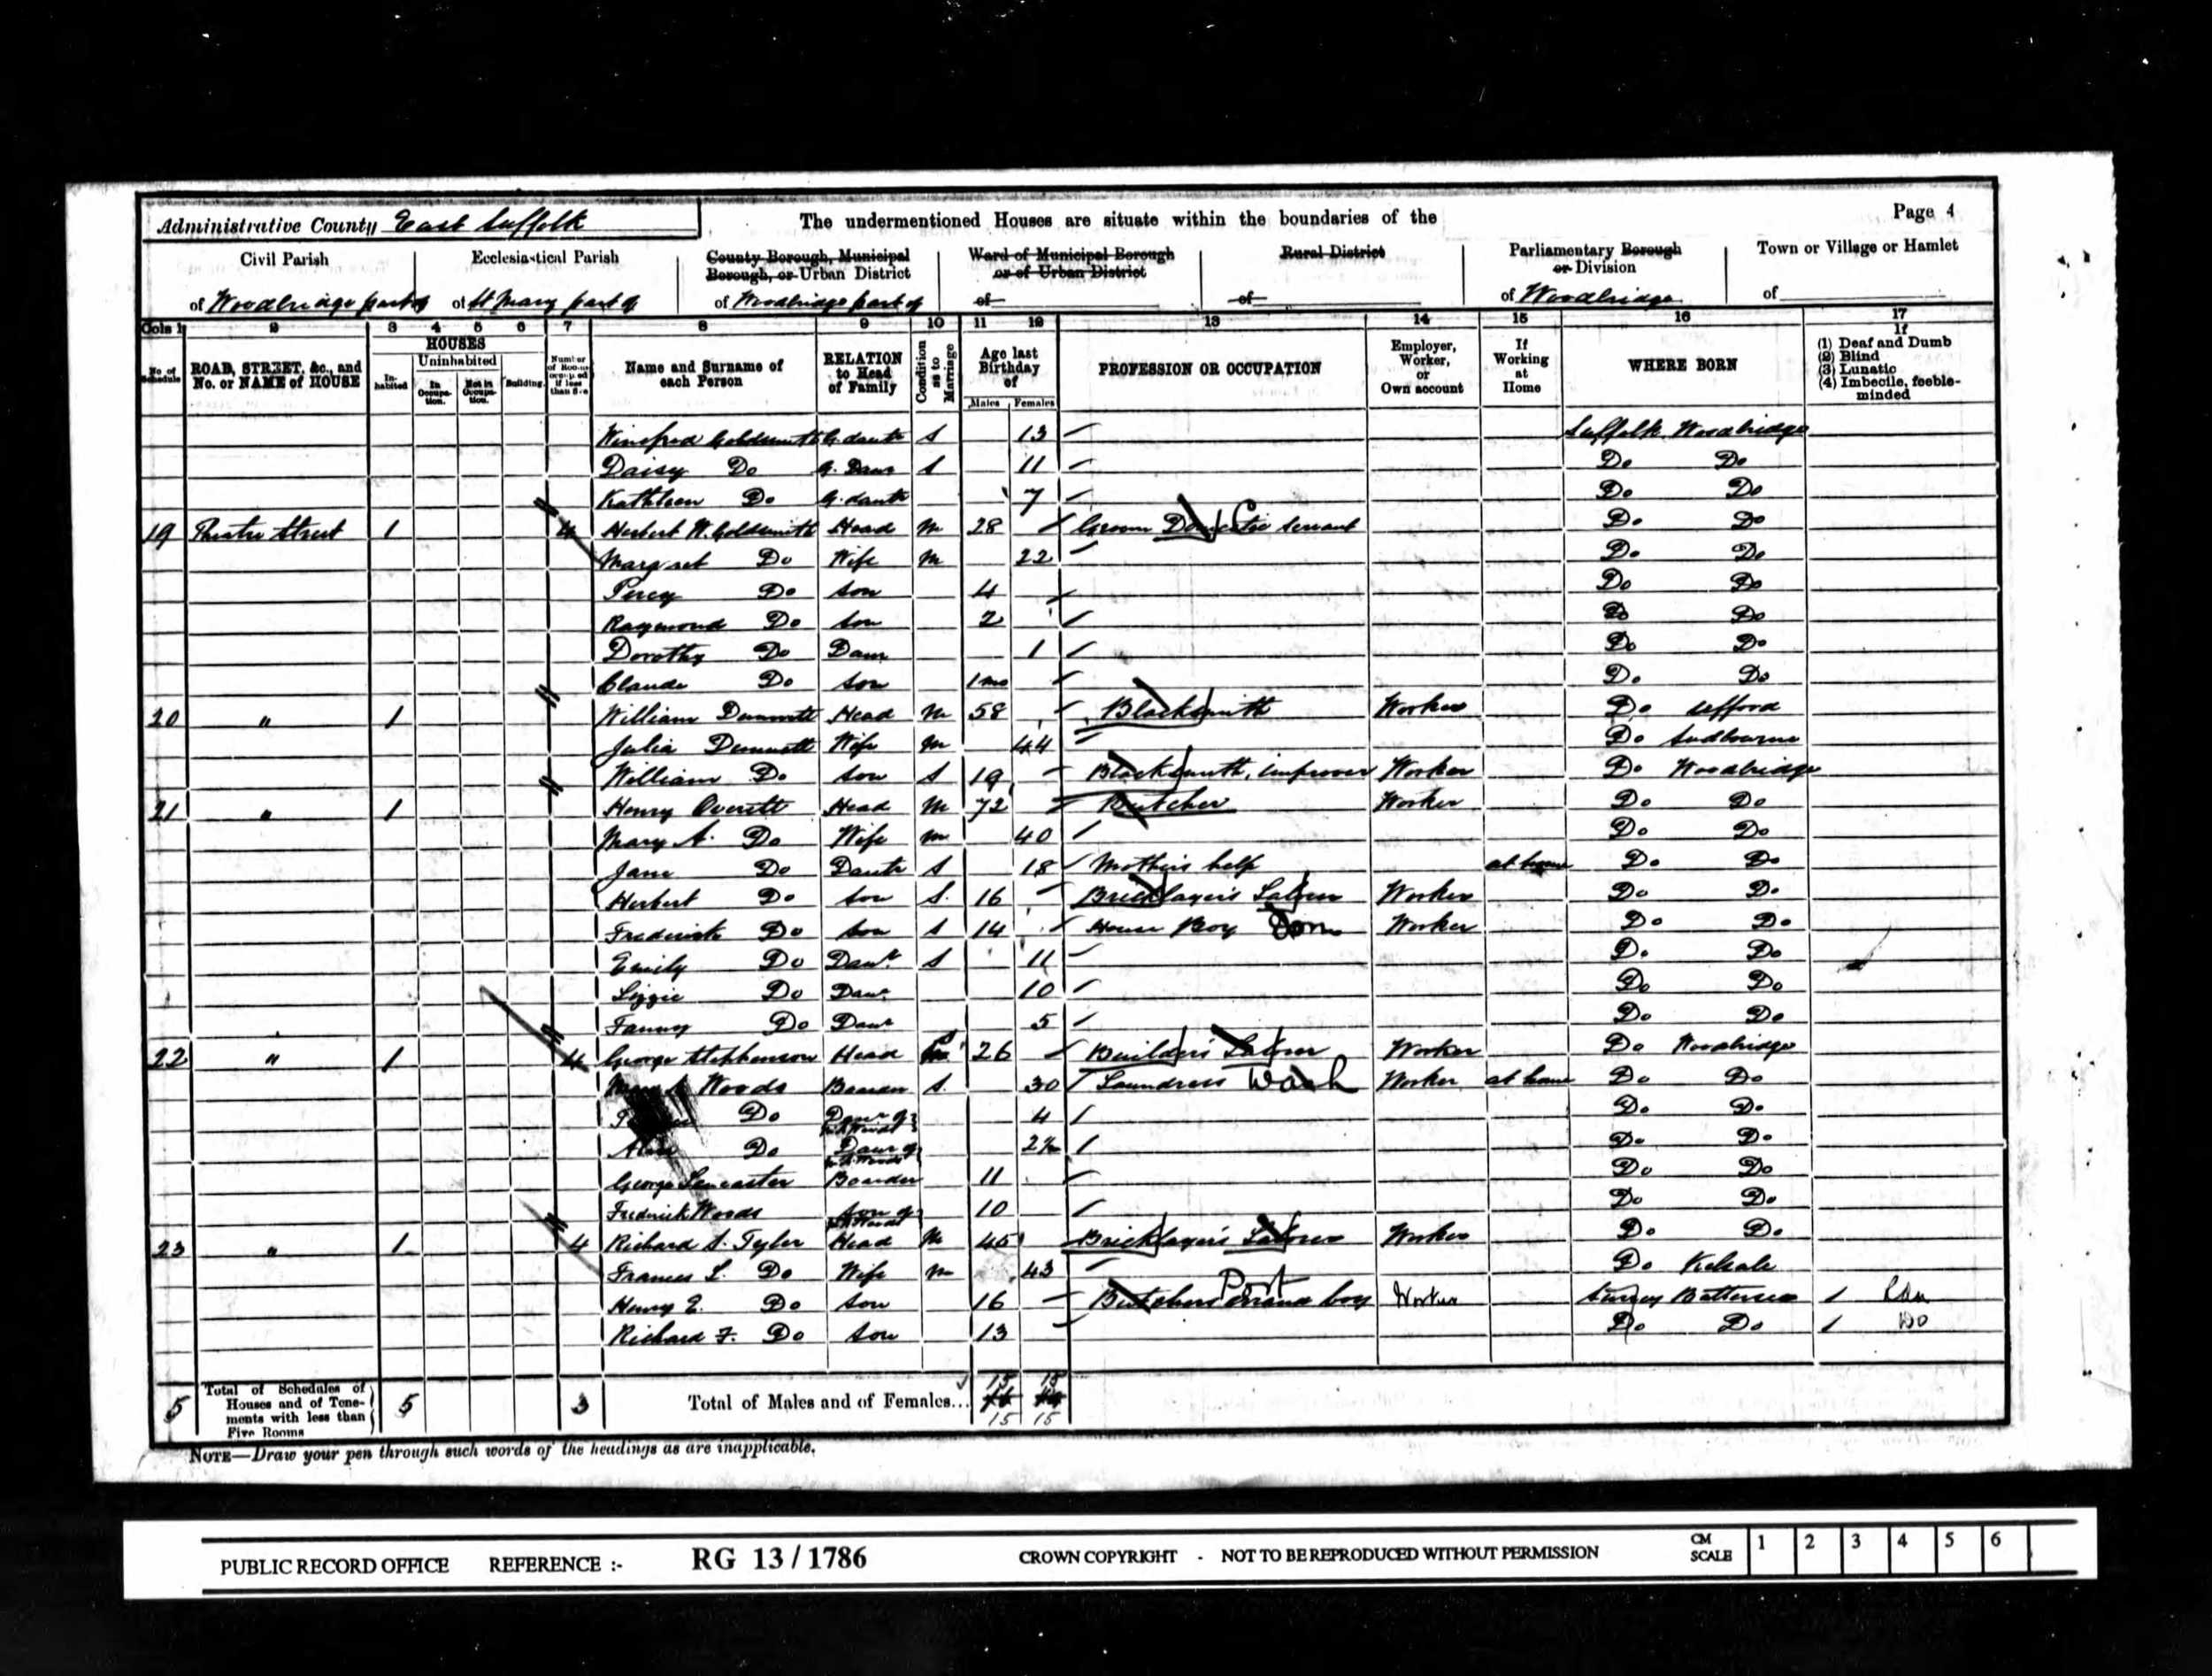 Dunnett W 1901 Census.jpg